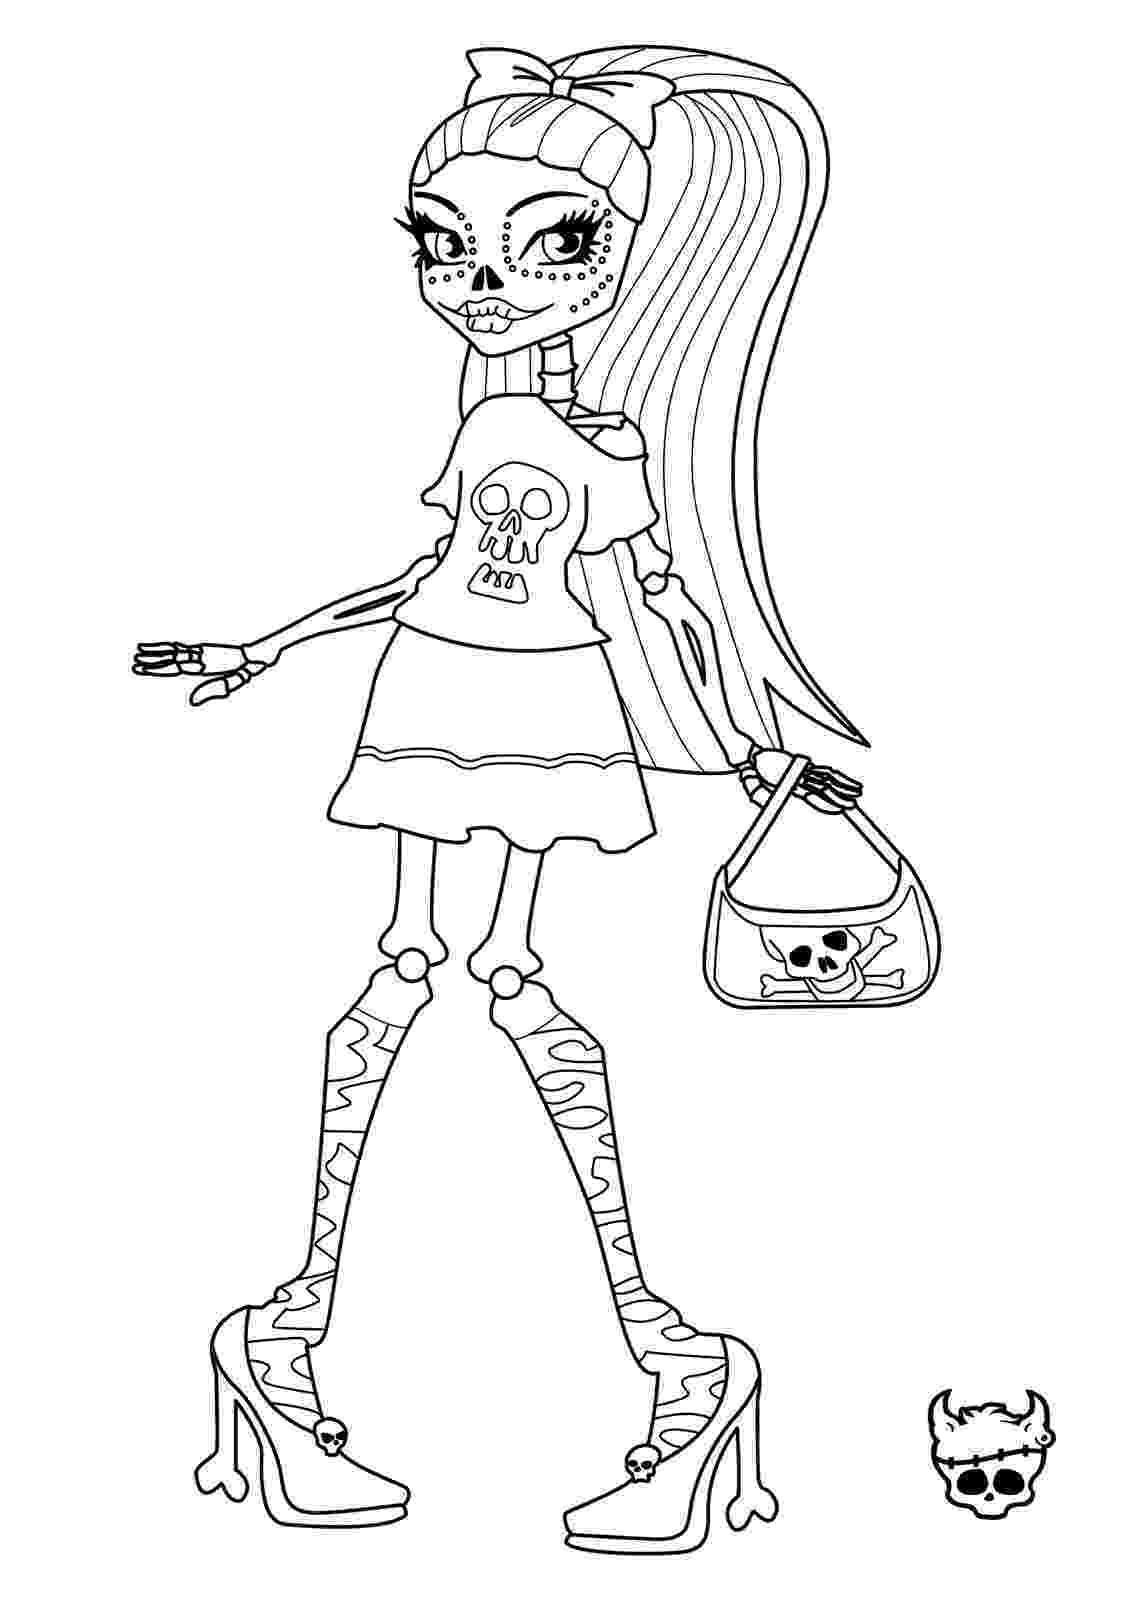 monster high coloring page kids n funcom 32 coloring pages of monster high high coloring monster page